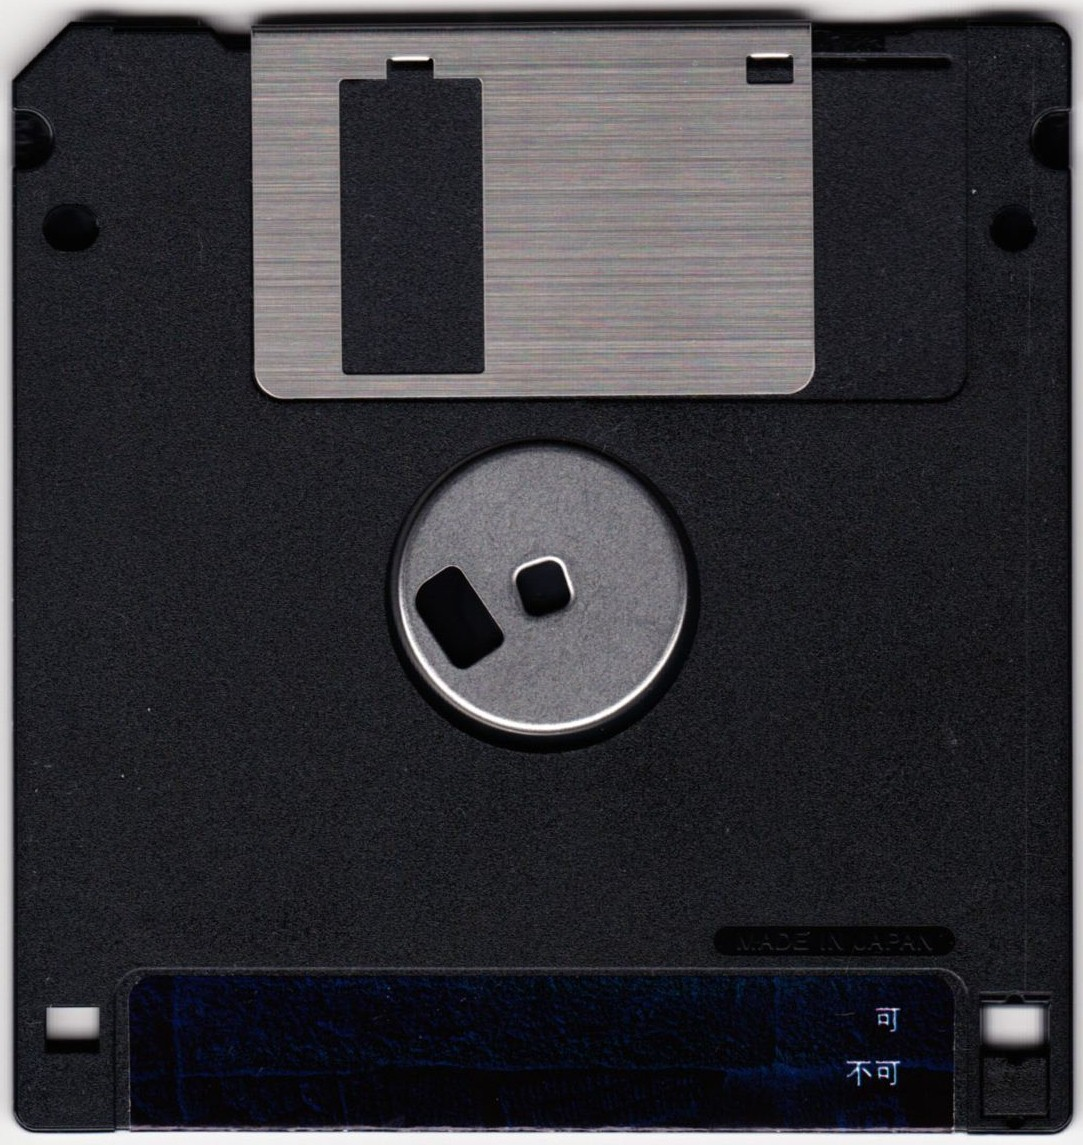 Game - Dungeon Master II - JP - PC-9801 - 3.5-inch - Disk D Save Disk - Back - Scan